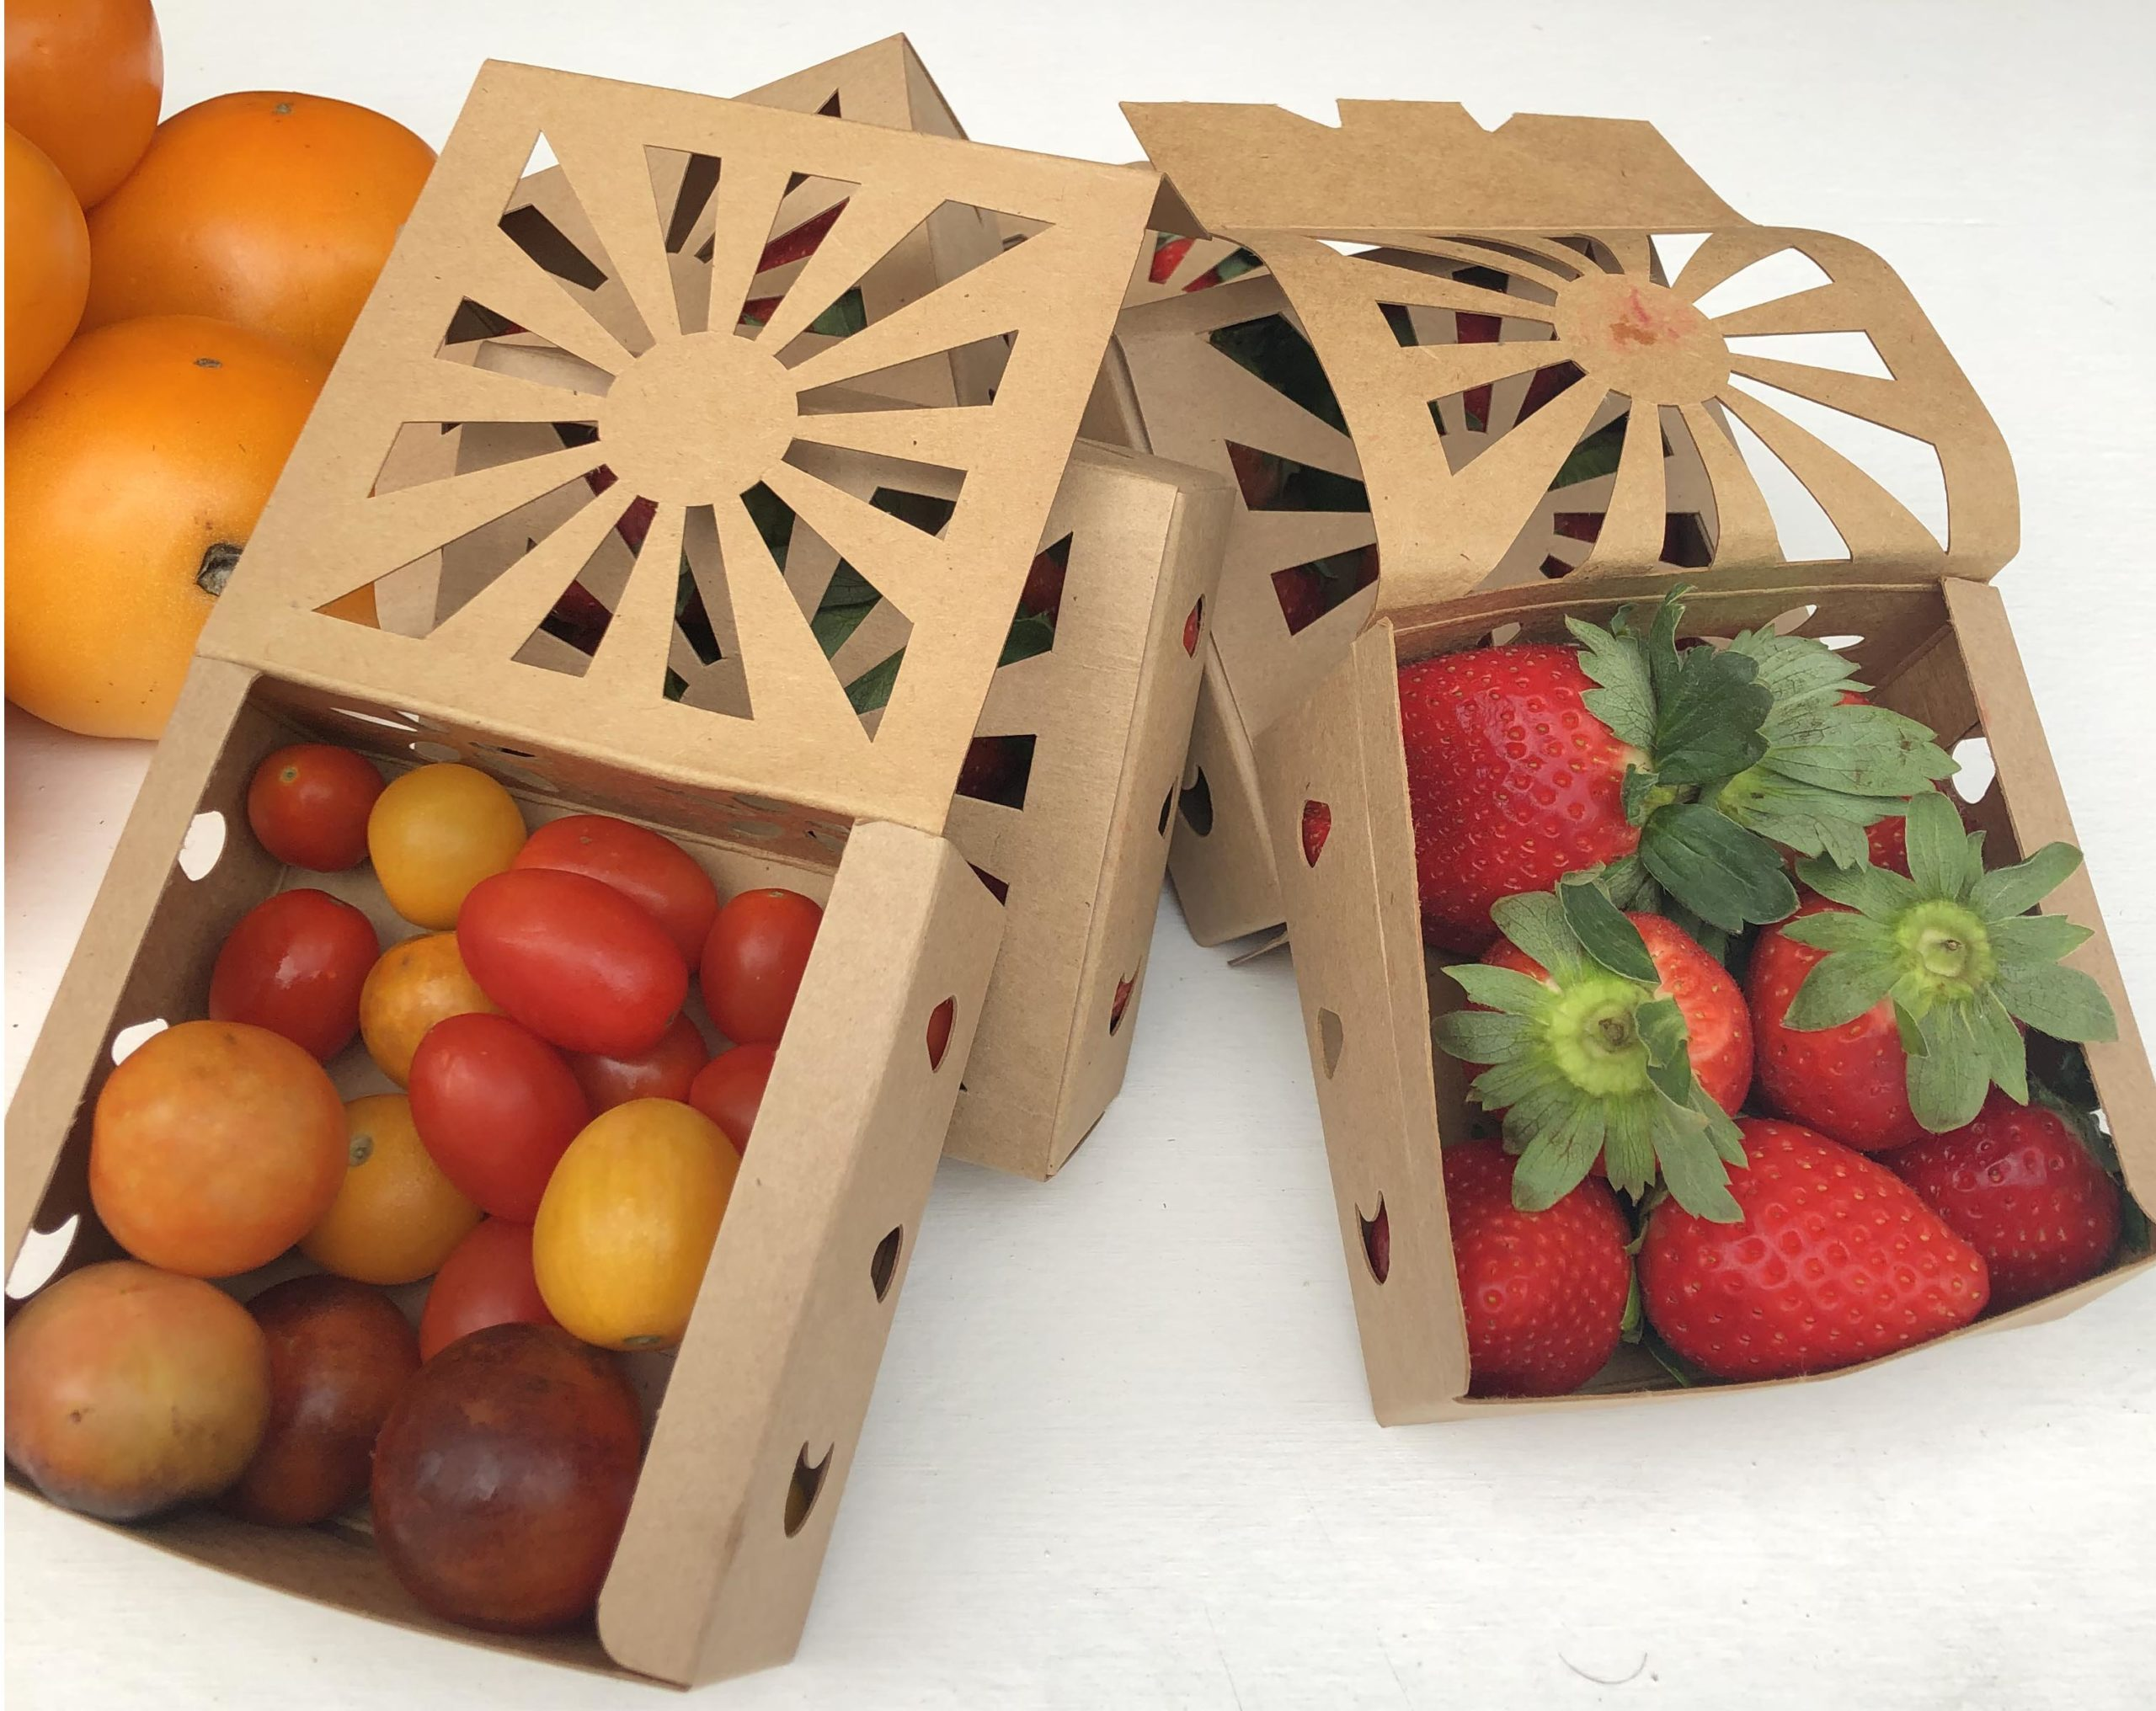 Organic strawberries and cherry tomatoes in recyclable half pint container